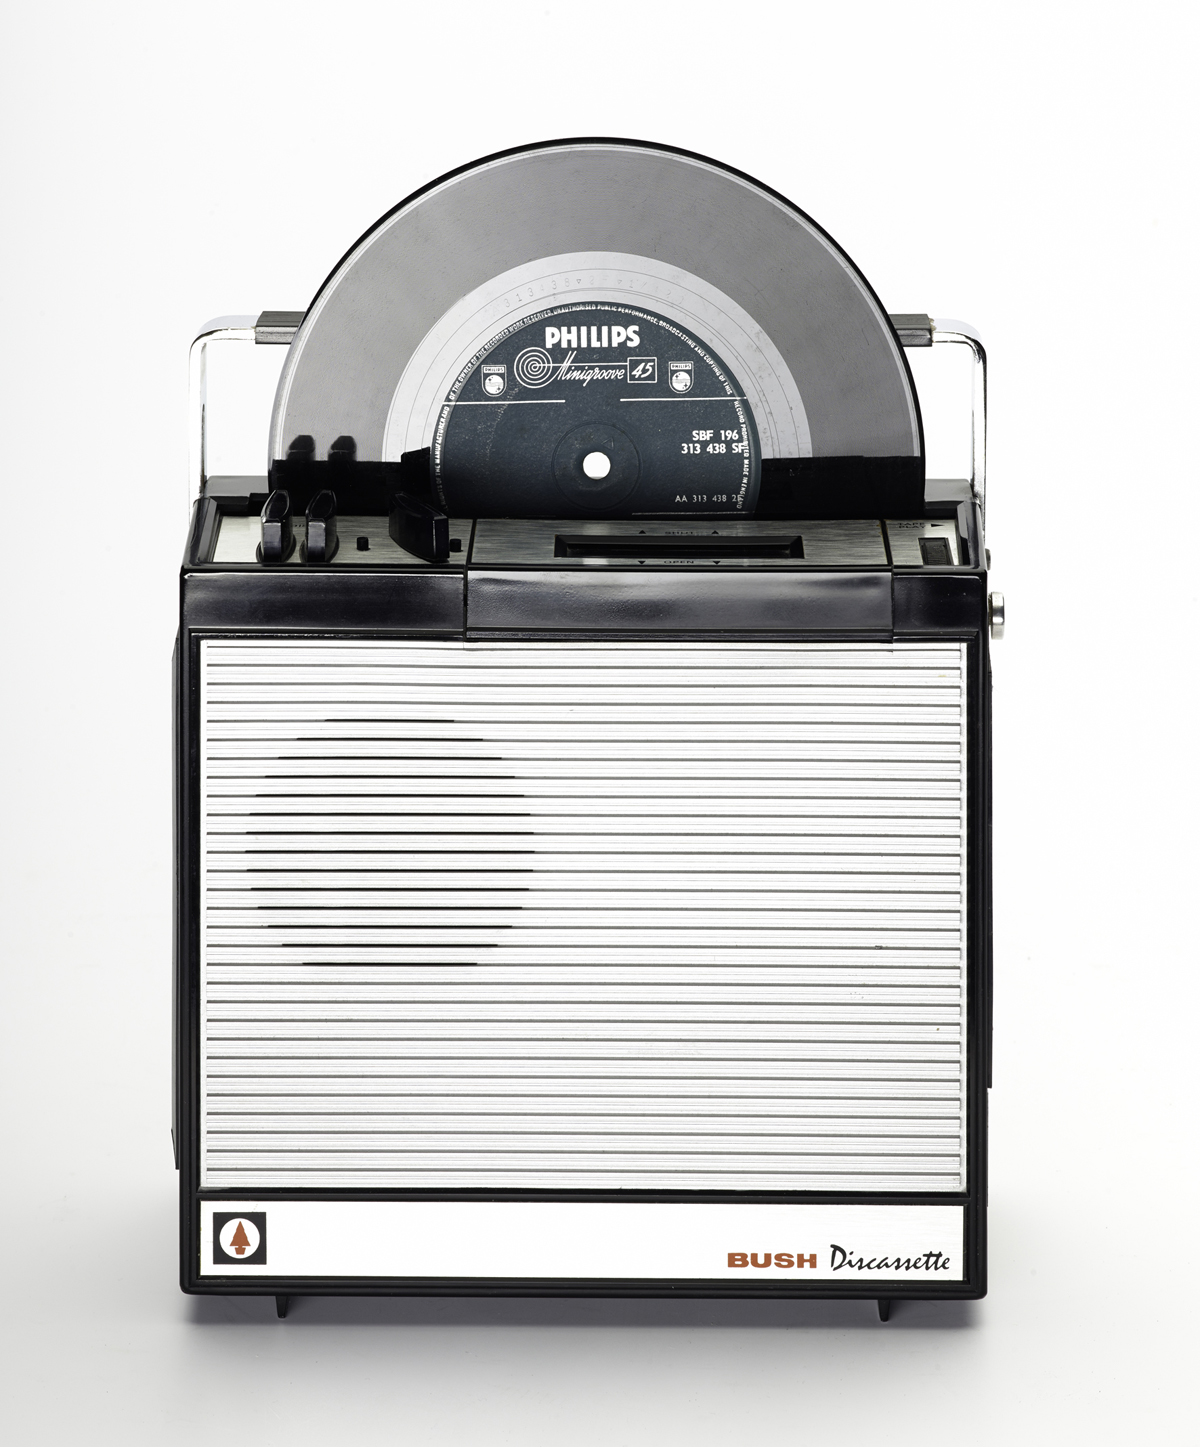 T.1998.142 - Discassette DC70 portable 7 inch single and compact cassette player, powered by internal batteries or external transformer, by Discatron Ltd, member of the Rank Organisation, England, c. 1970.